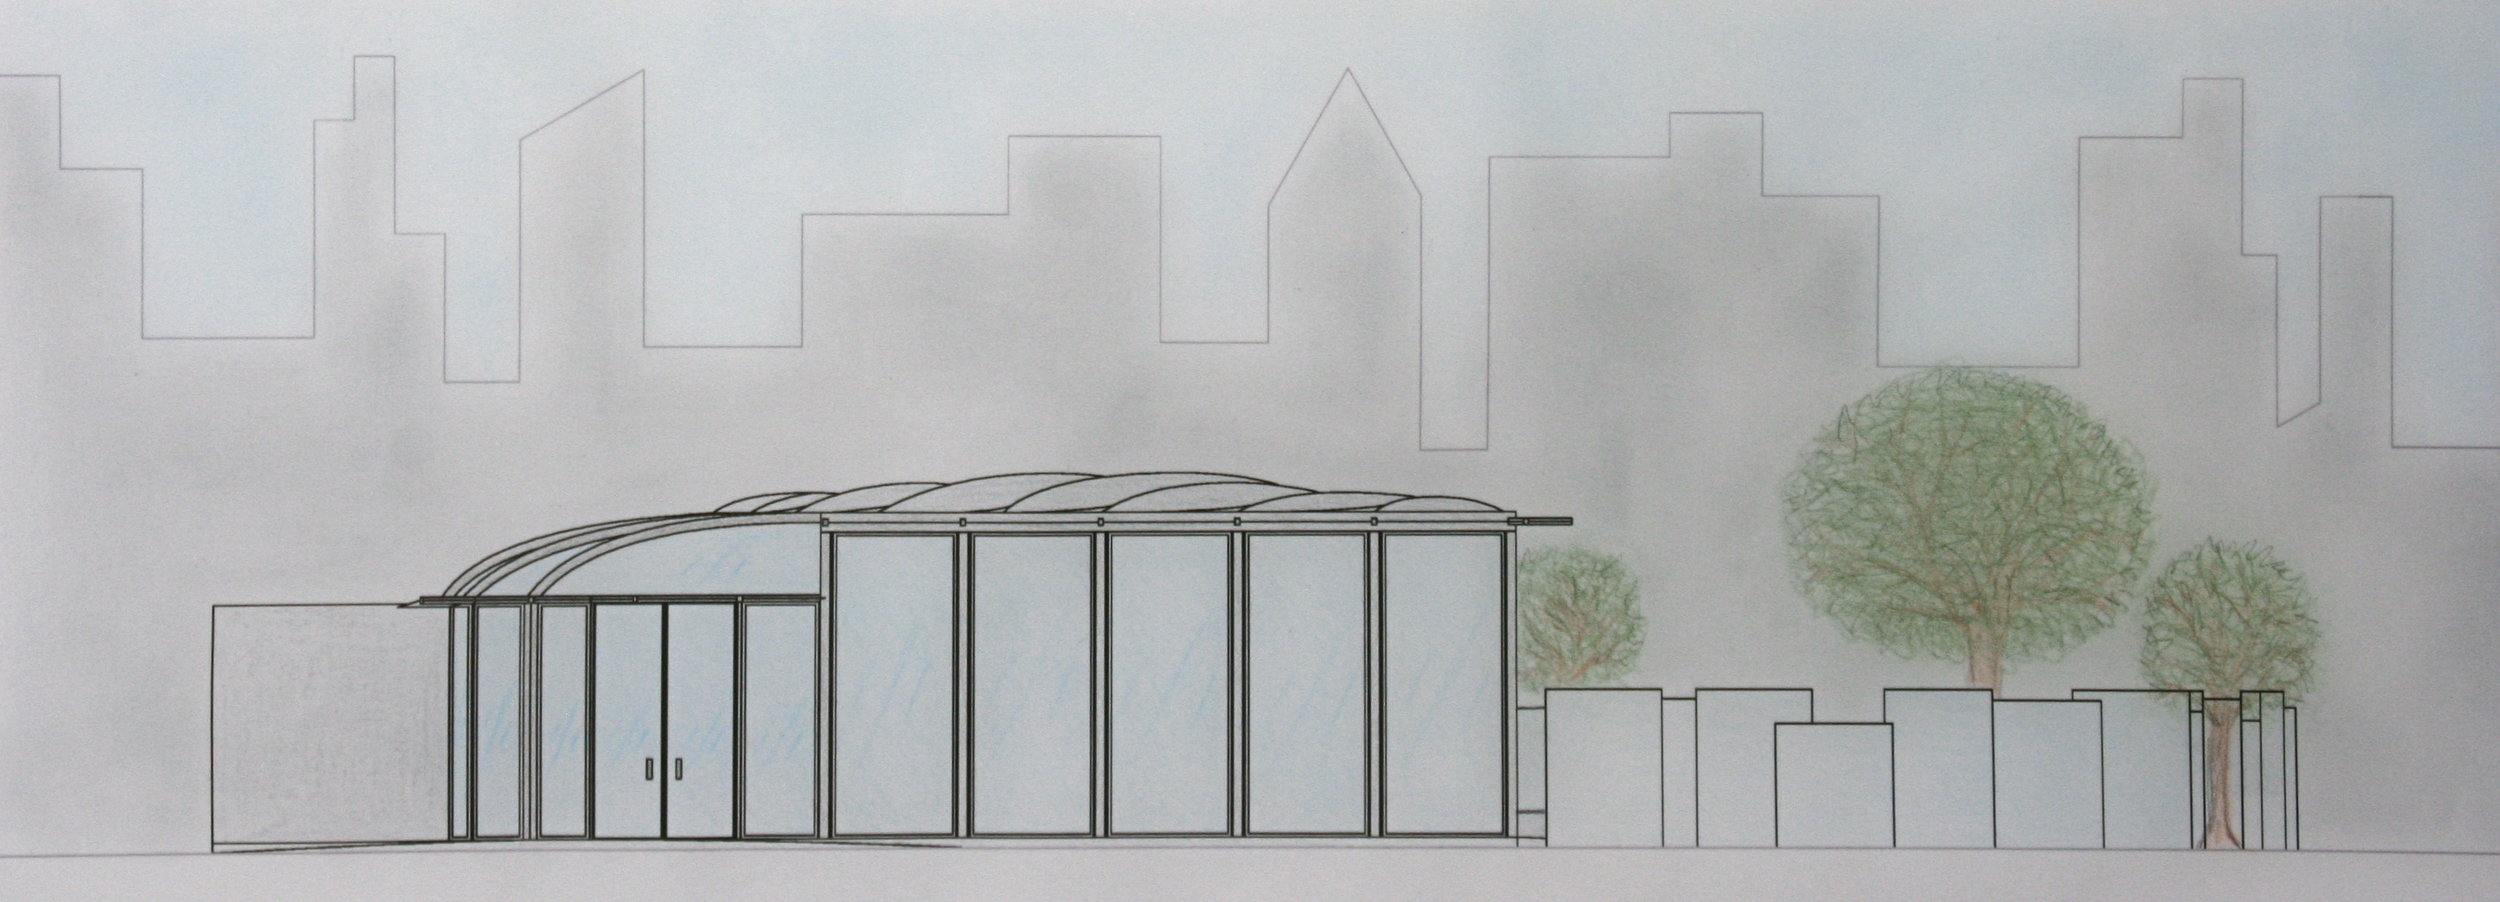 Art Pavilion - Drawings 9.JPG